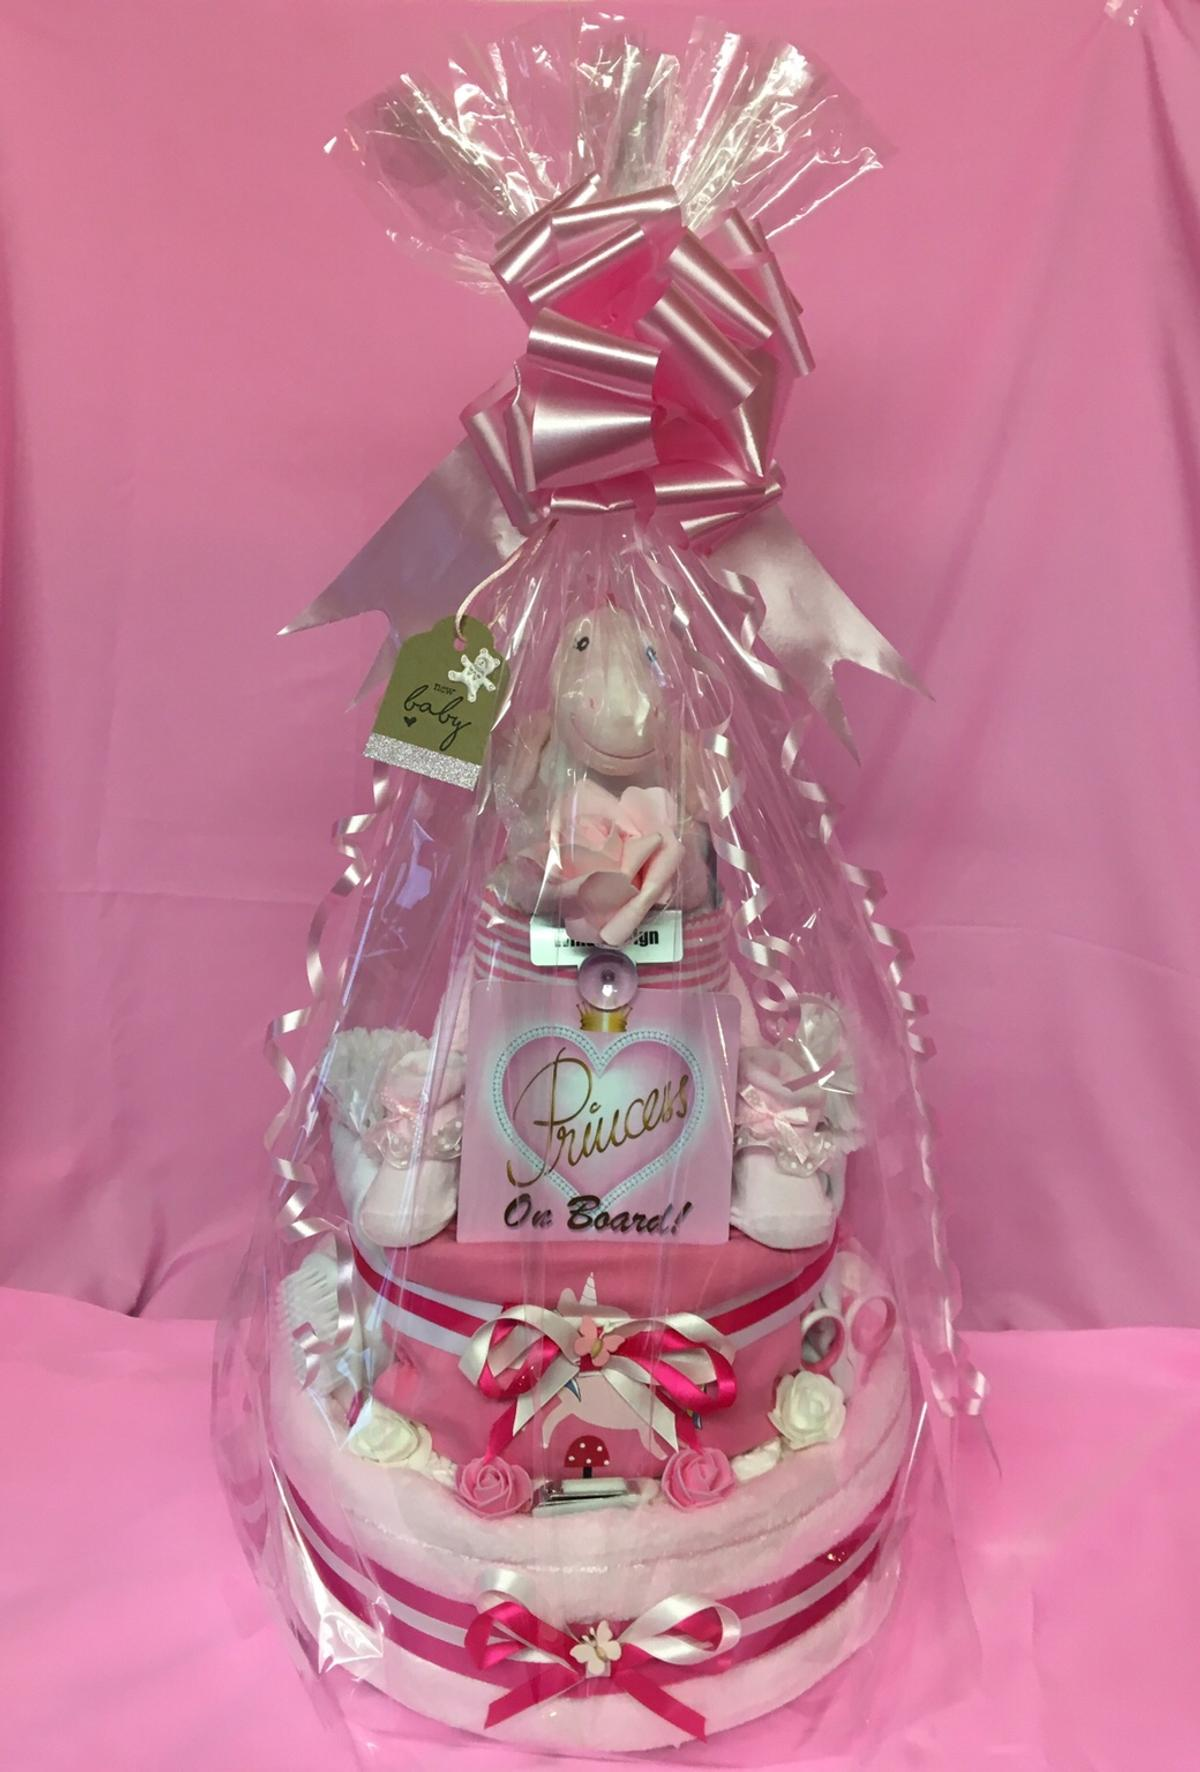 Bling baby shower gift clothing bottle diapers personalized present pink girl